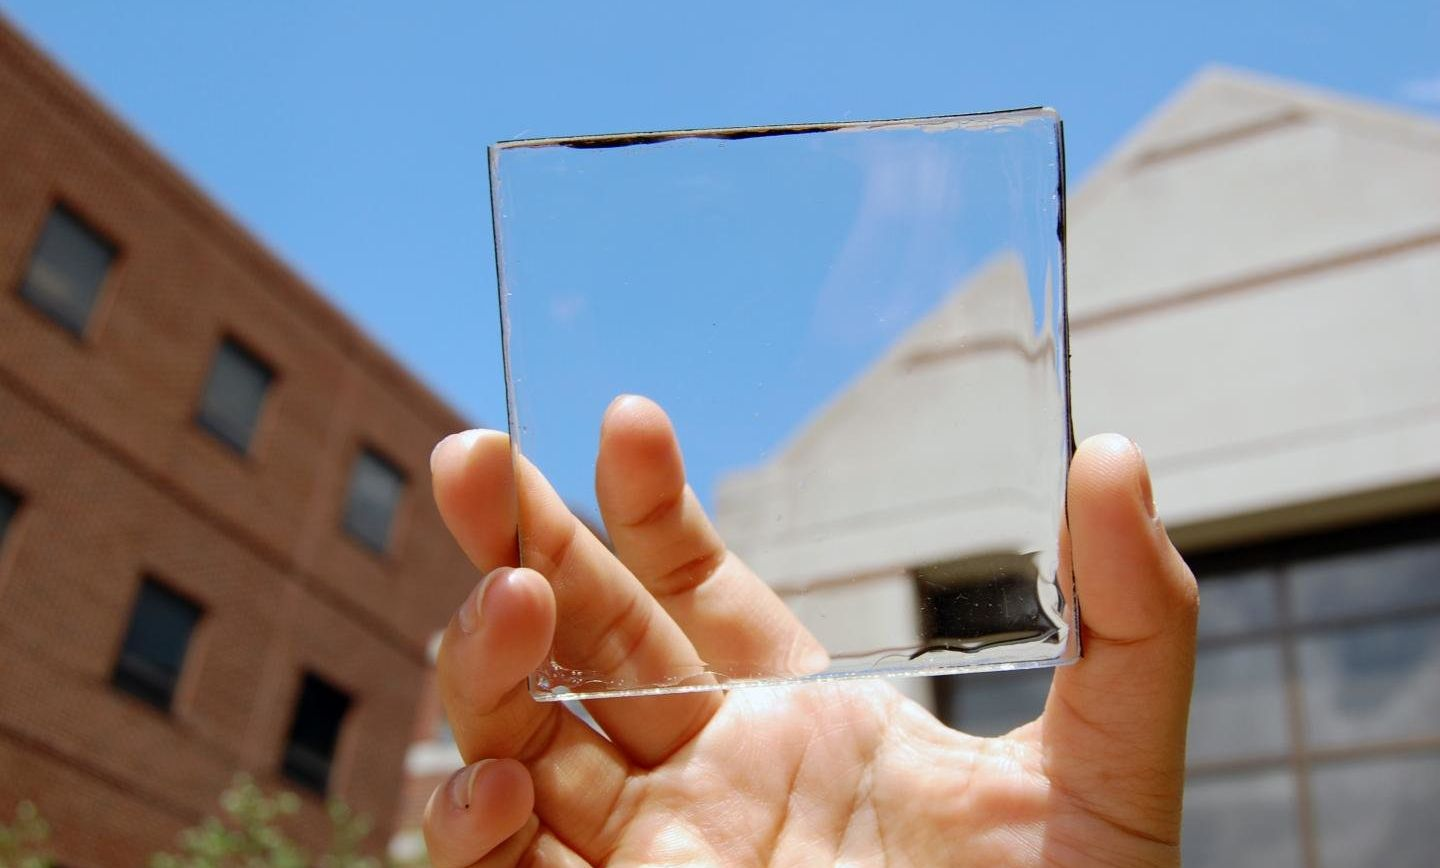 Scientists believe that the energy future for transparent solar panels